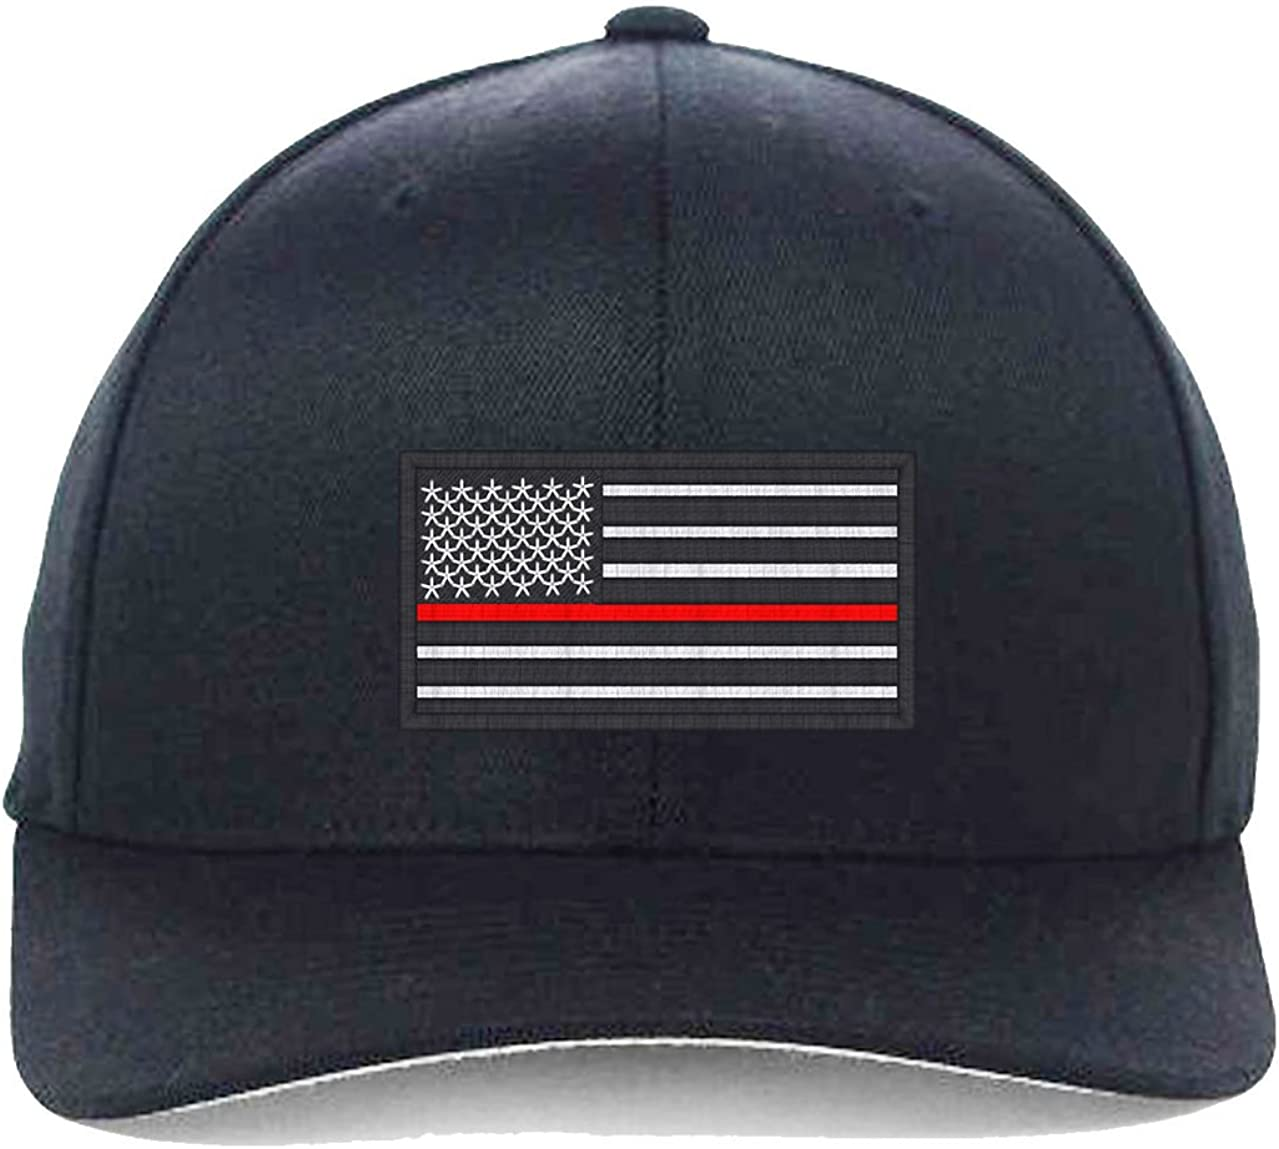 USA Flag Red Line, Local Fire Department Support Embroidered, Flexfit Hats 61hOx1ZlTOL